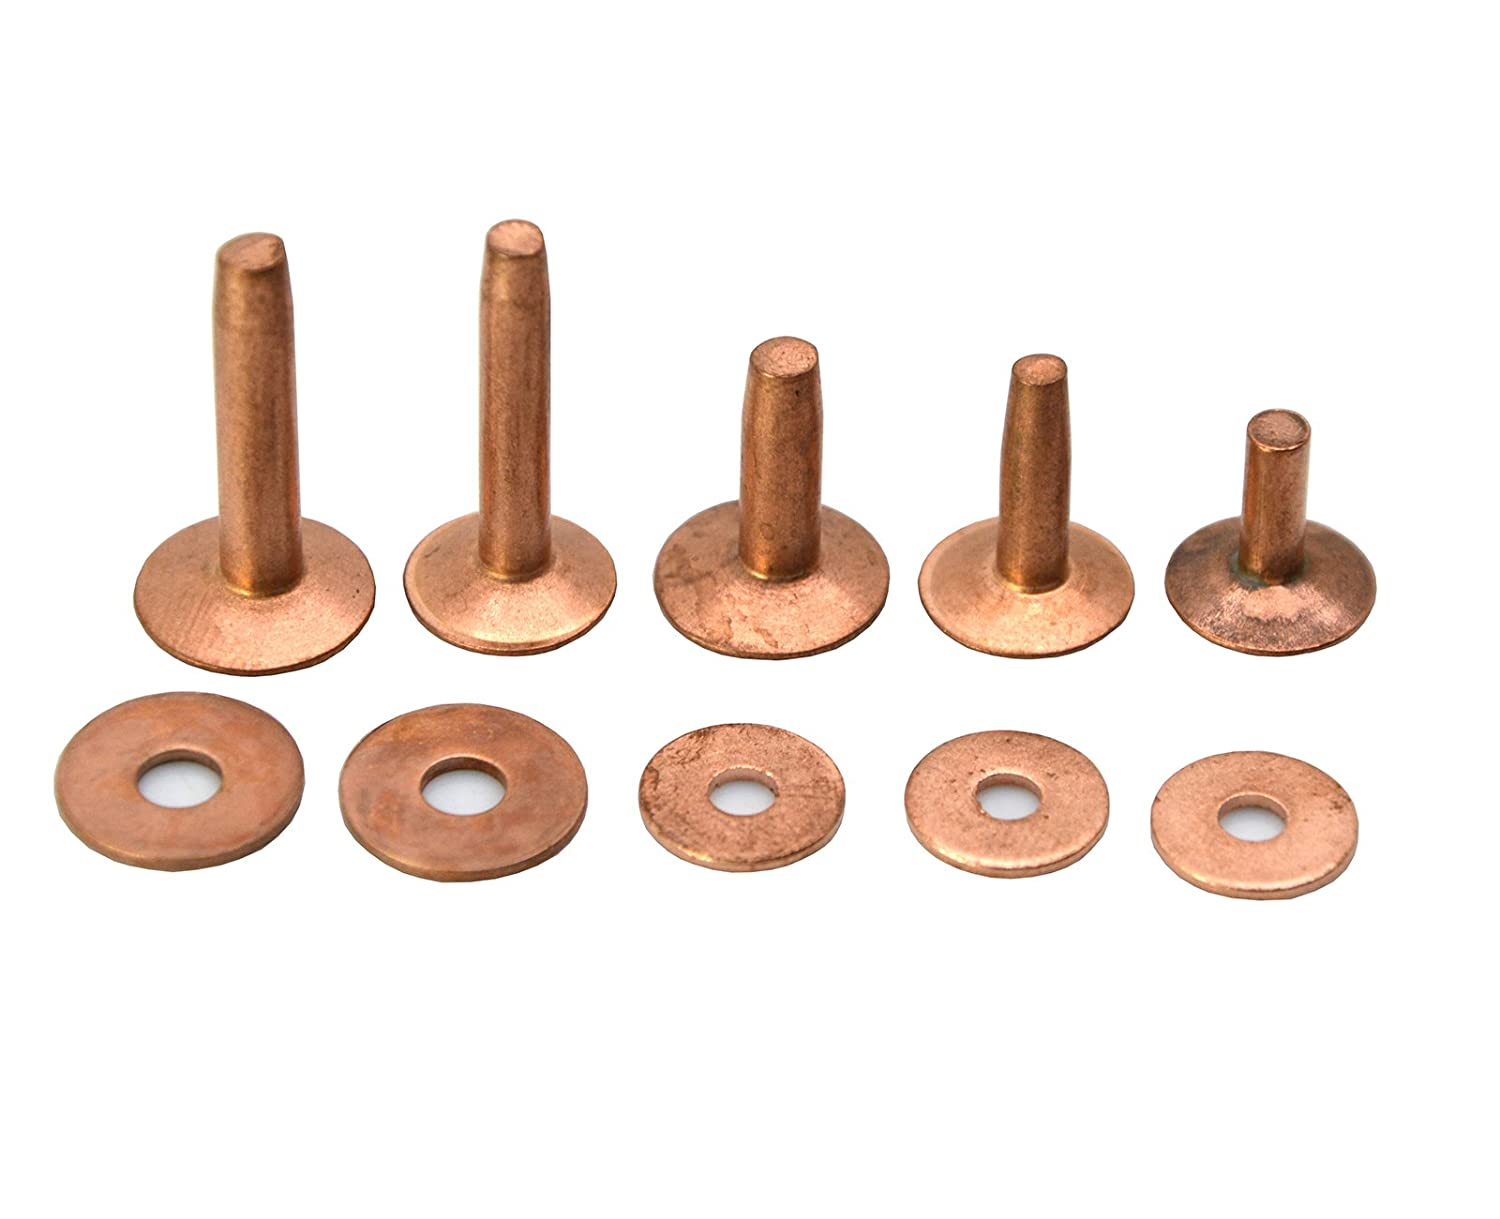 Okones Pack of 40,3/8''cap×1/8''shaft×1/2''tall,Solid Copper Rivets and Burrs Studs Spike for Leather Craft Belt Wallet (3/8''cap×1/8''shaft×1/2''tall, yellow copper)